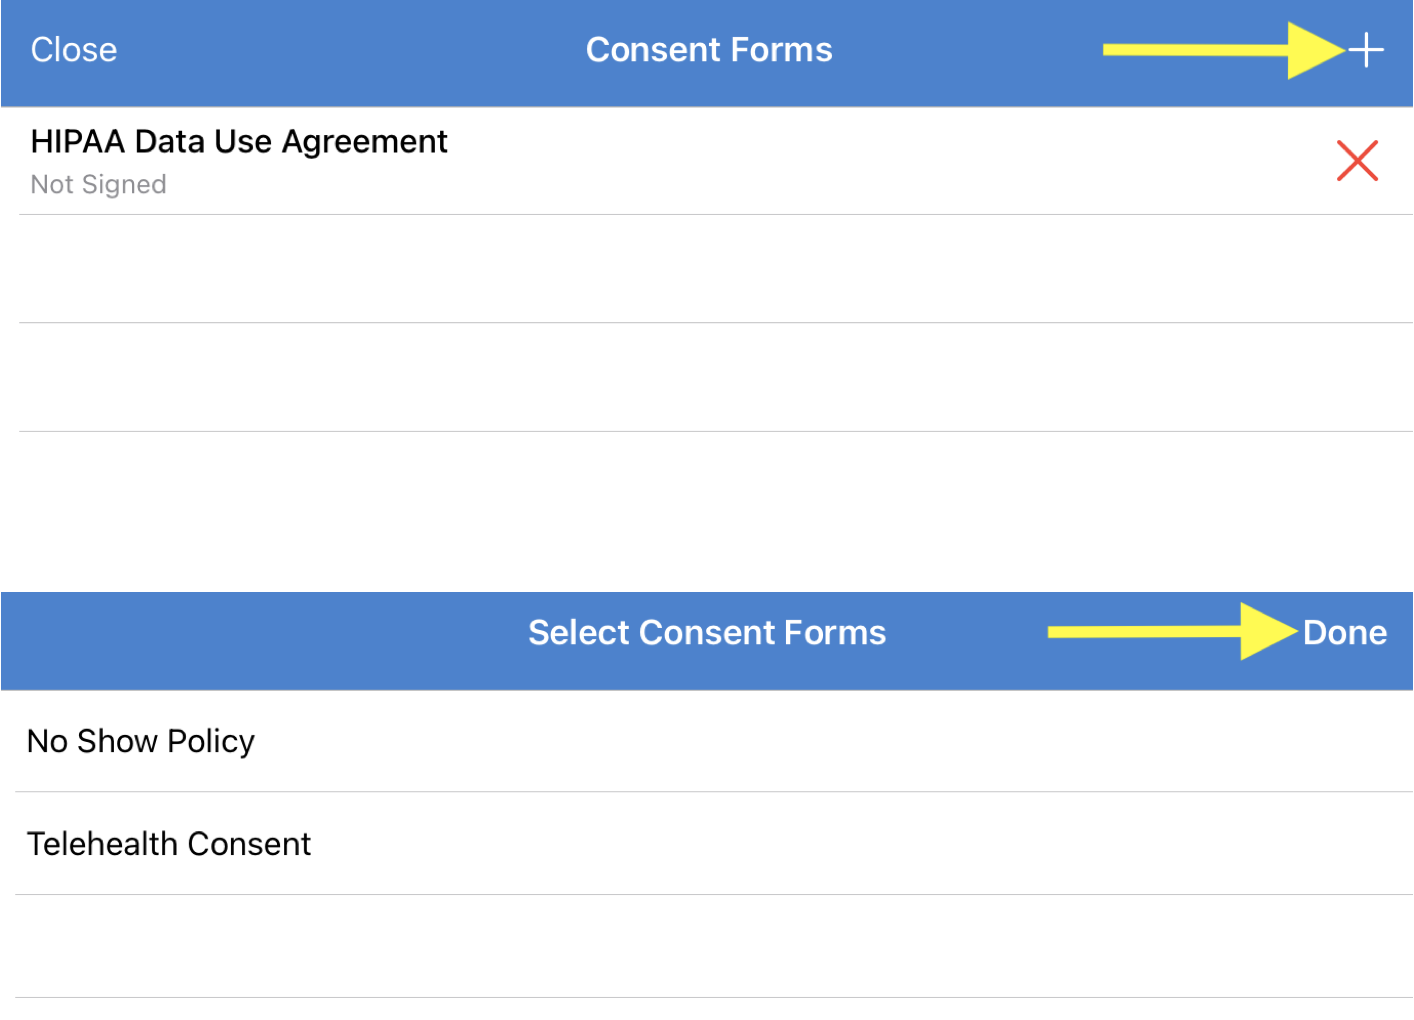 Consent_forms_Add_and_Select.png